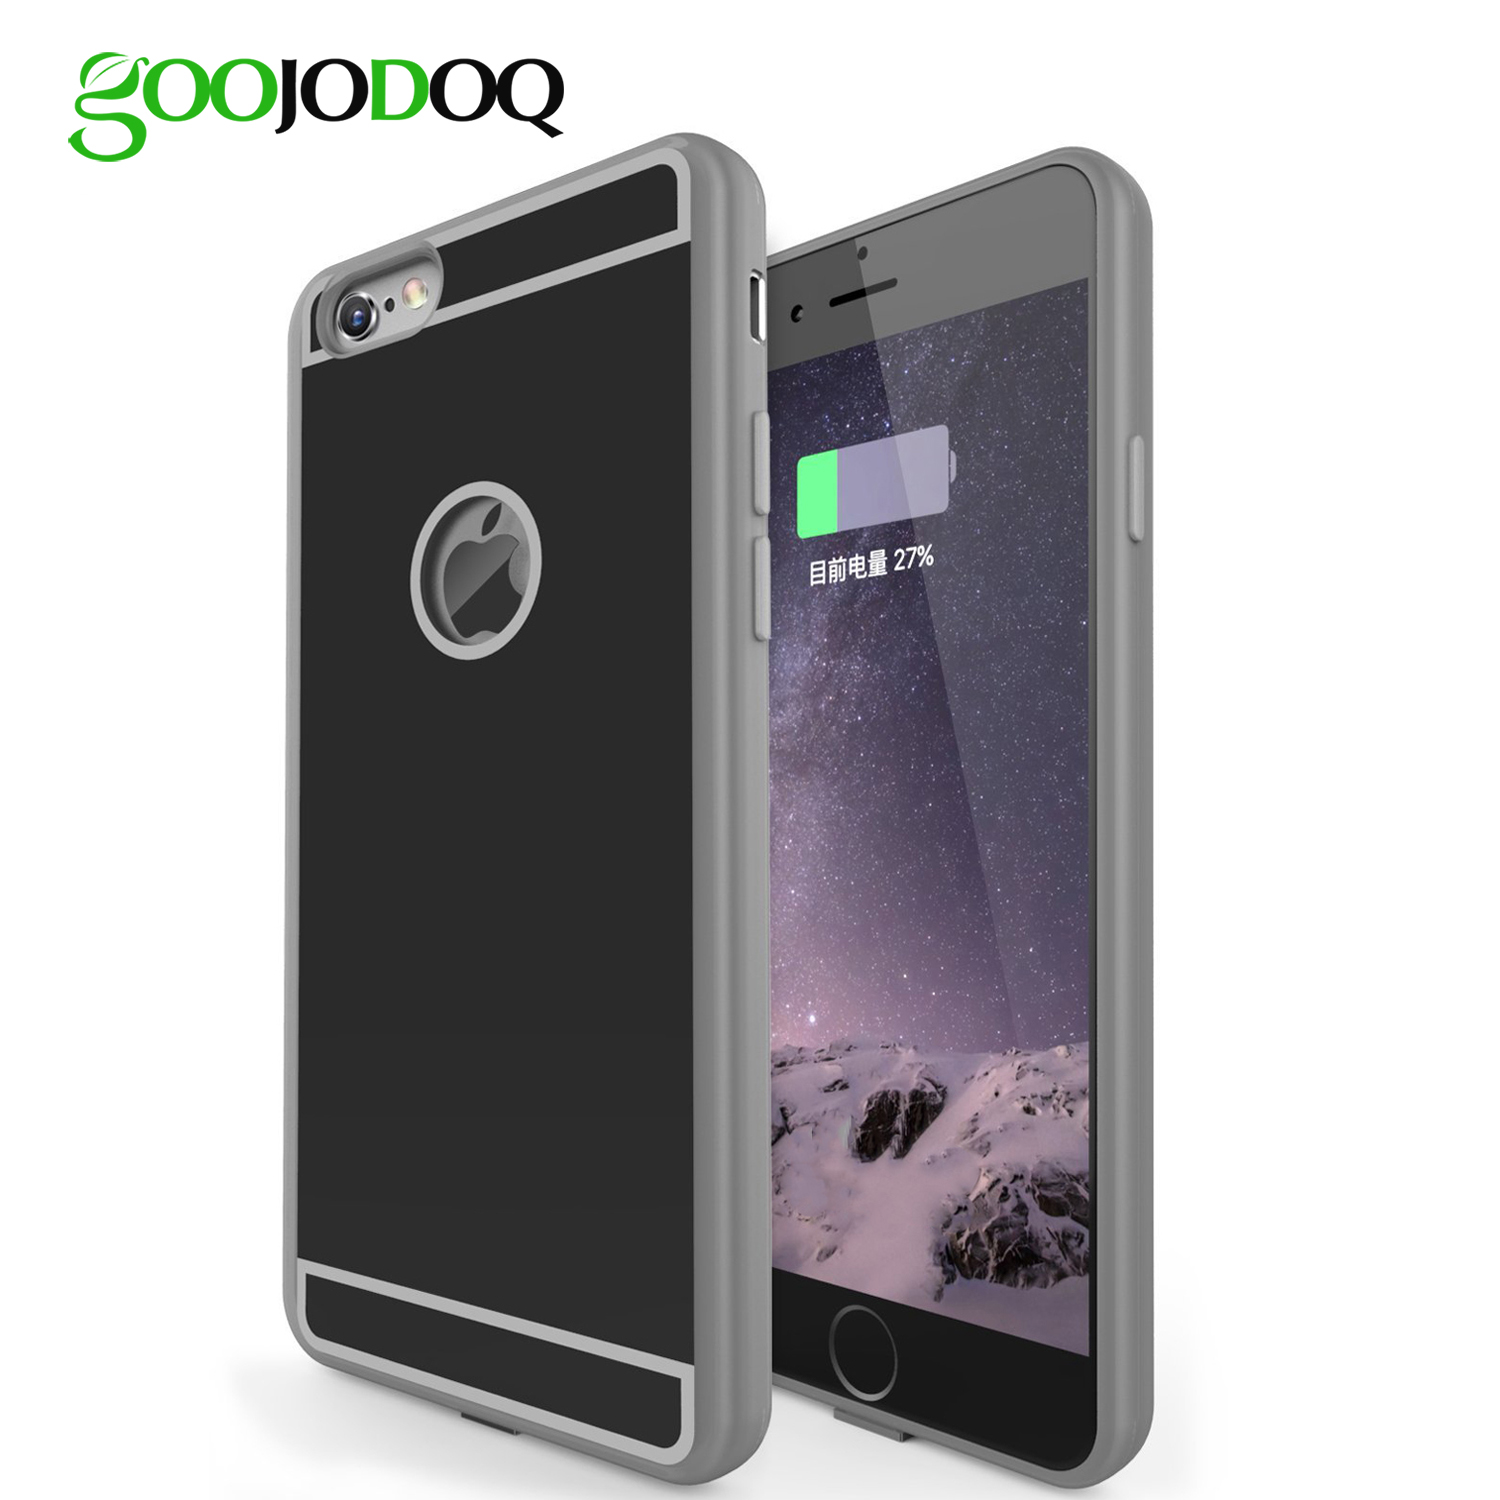 hot qi wireless charger receiver case for apple iphone 7 6. Black Bedroom Furniture Sets. Home Design Ideas